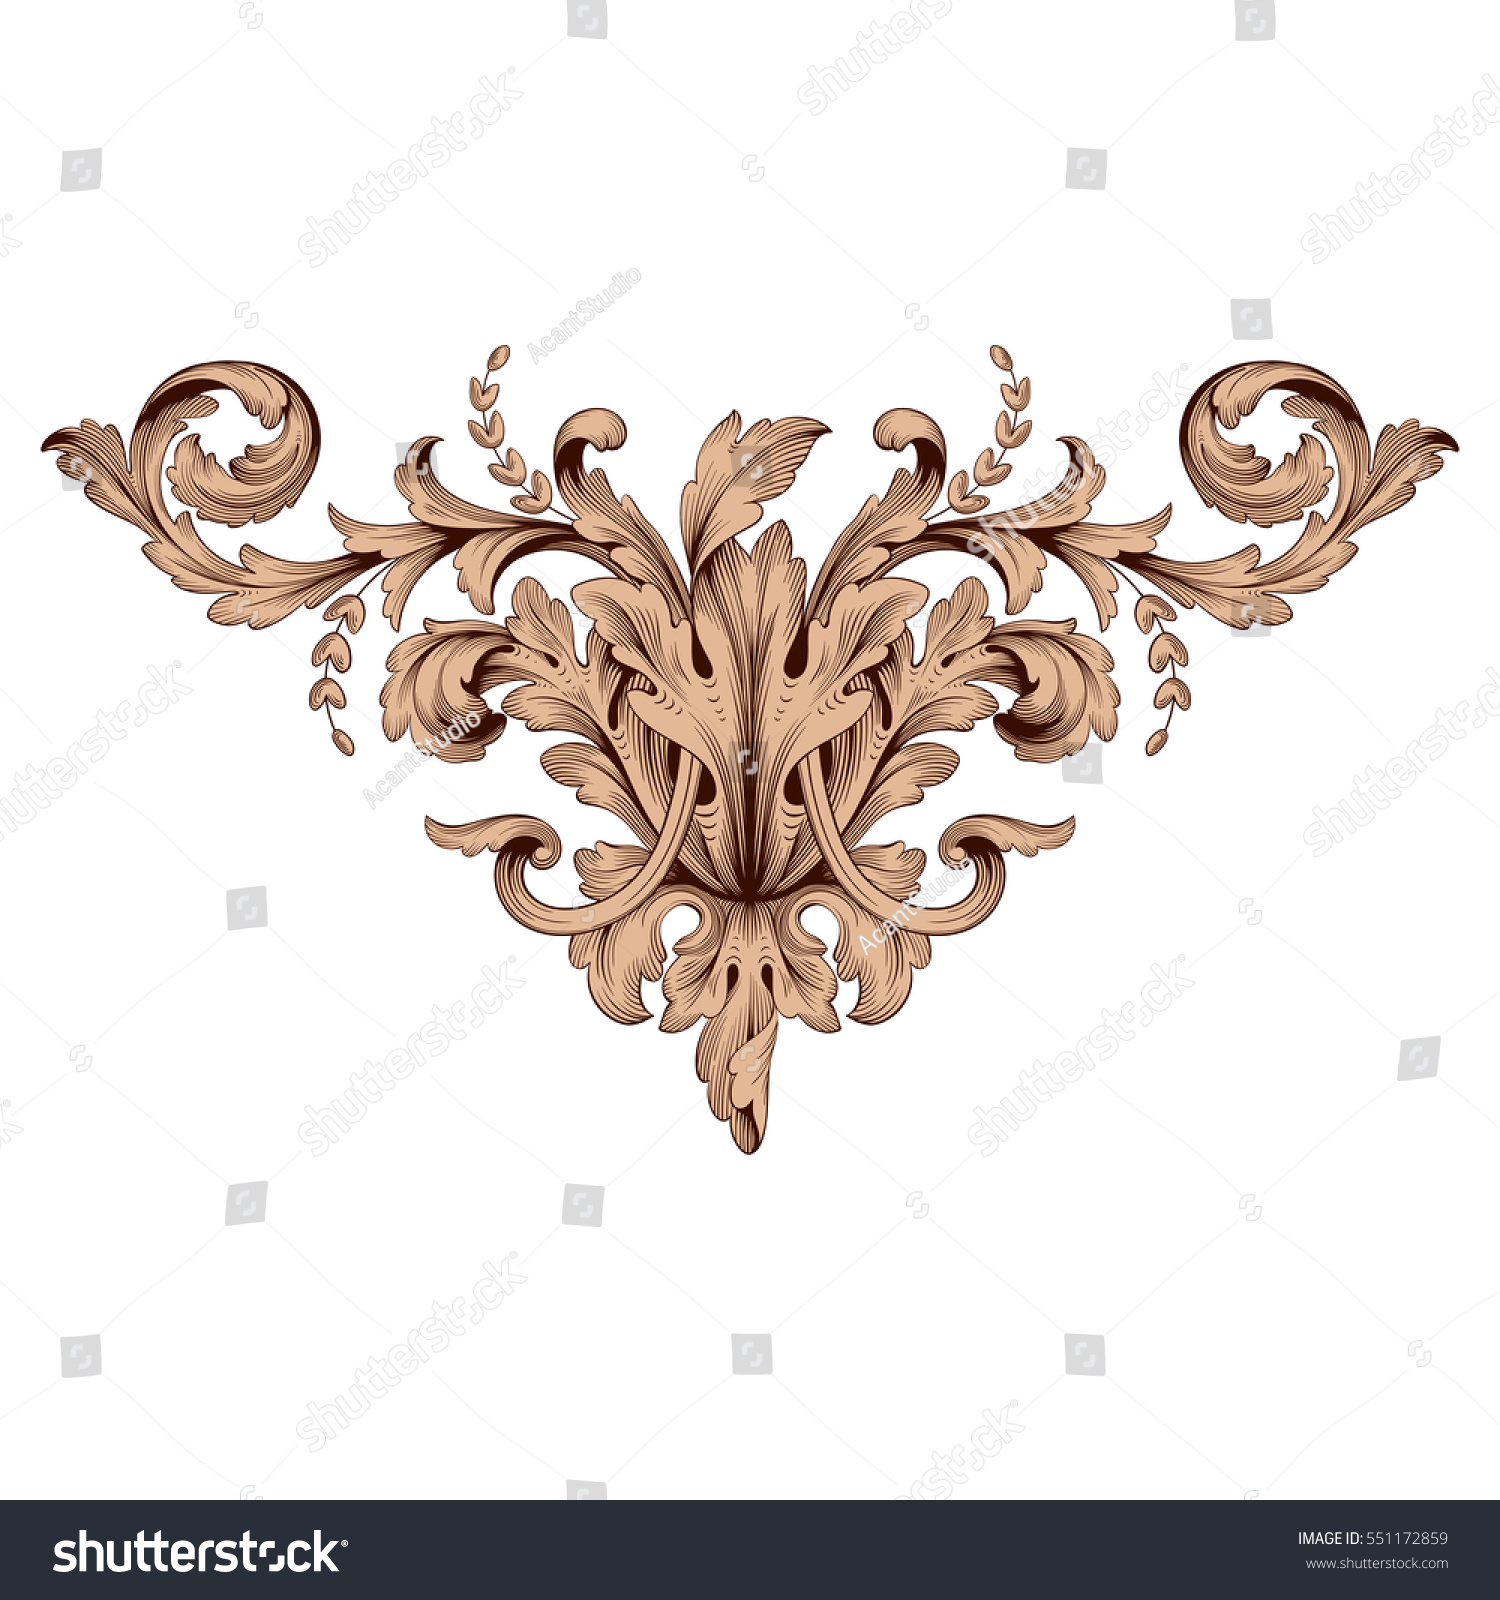 Vintage baroque ornament retro pattern antique stock for Acanthus decoration